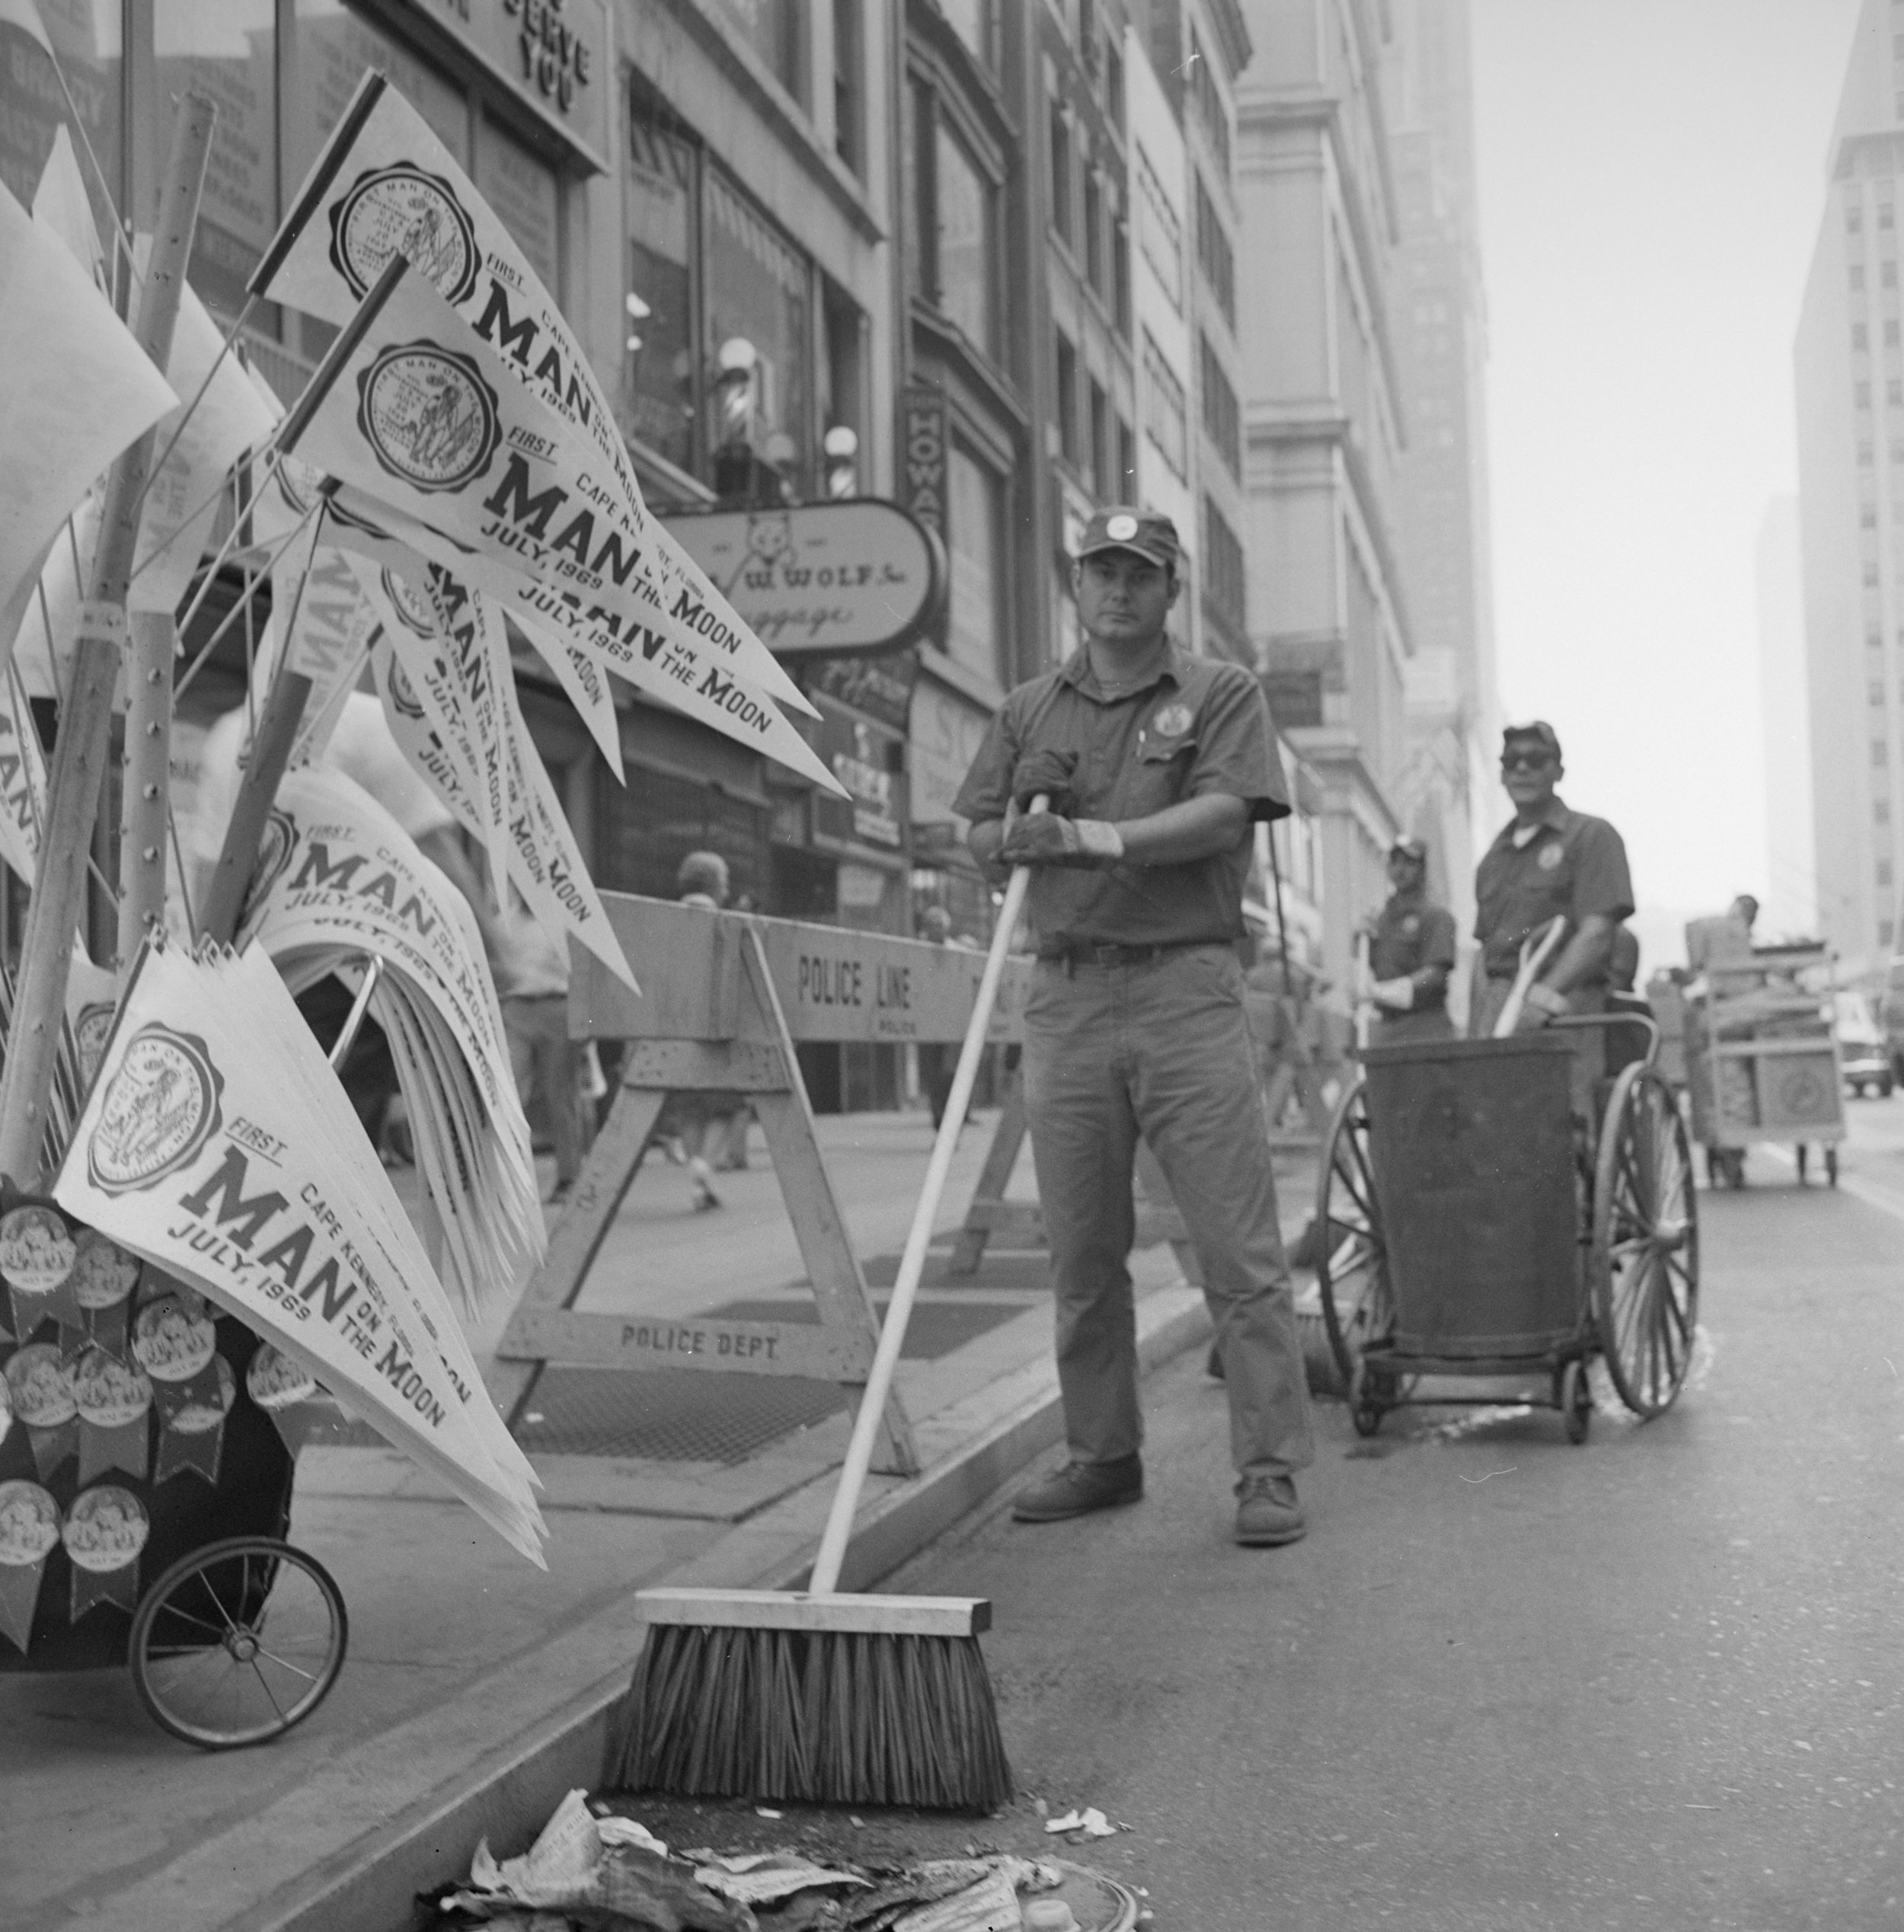 Sanitation workers cleaning the parade route along Broadway, August 13, 1969. Department of Sanitation Collection, NYC Municipal Archives.